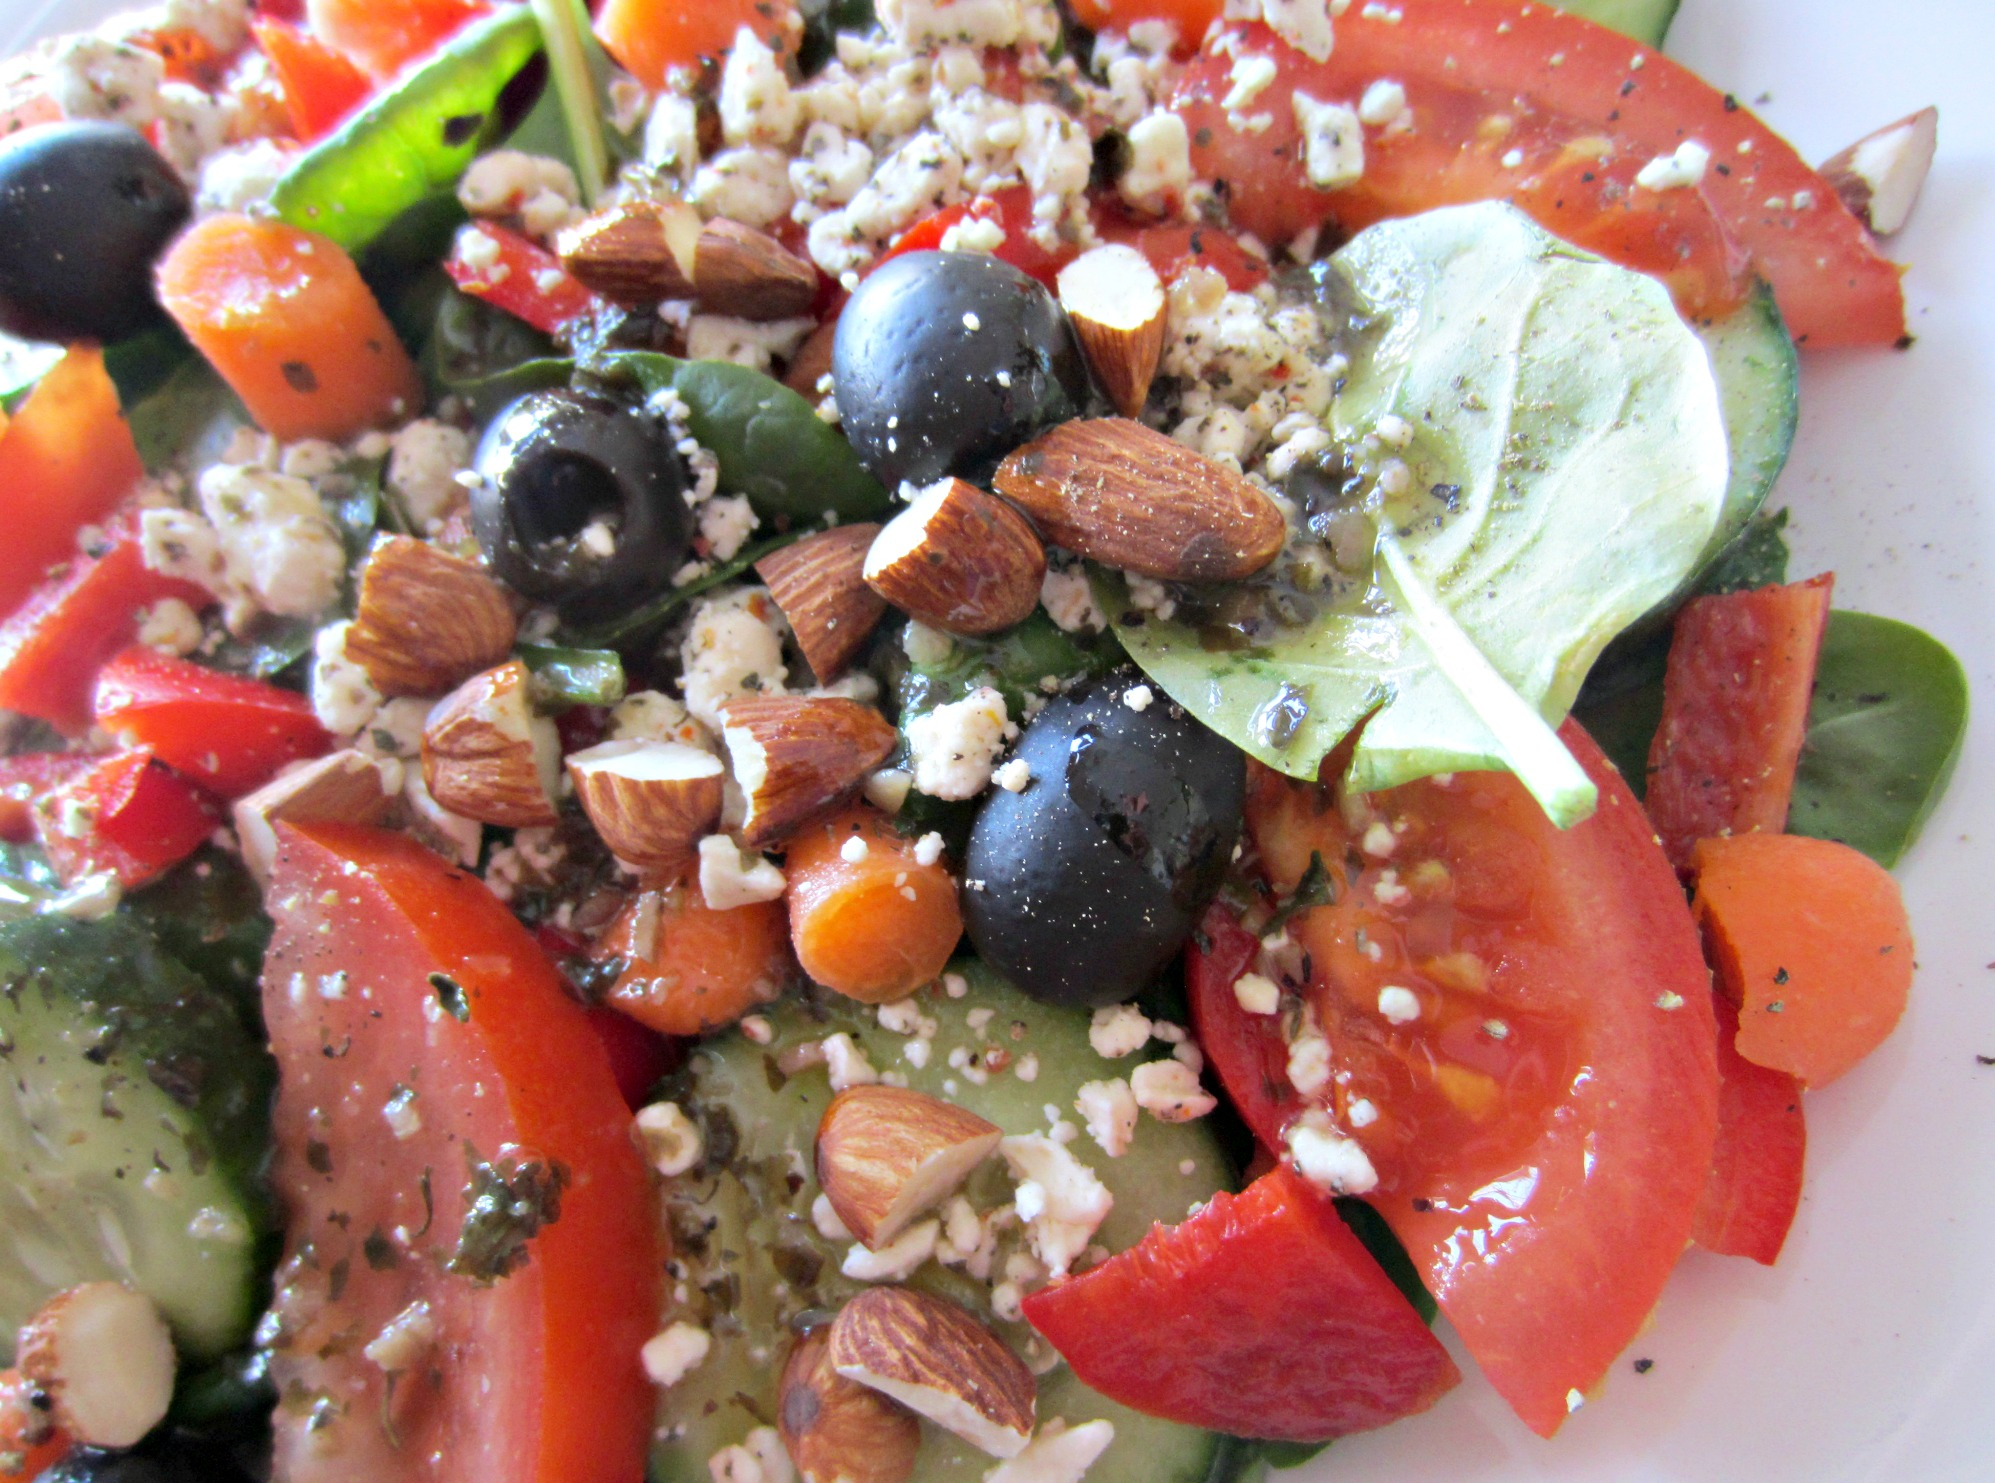 veggie loaded salad with almonds and feta cheese